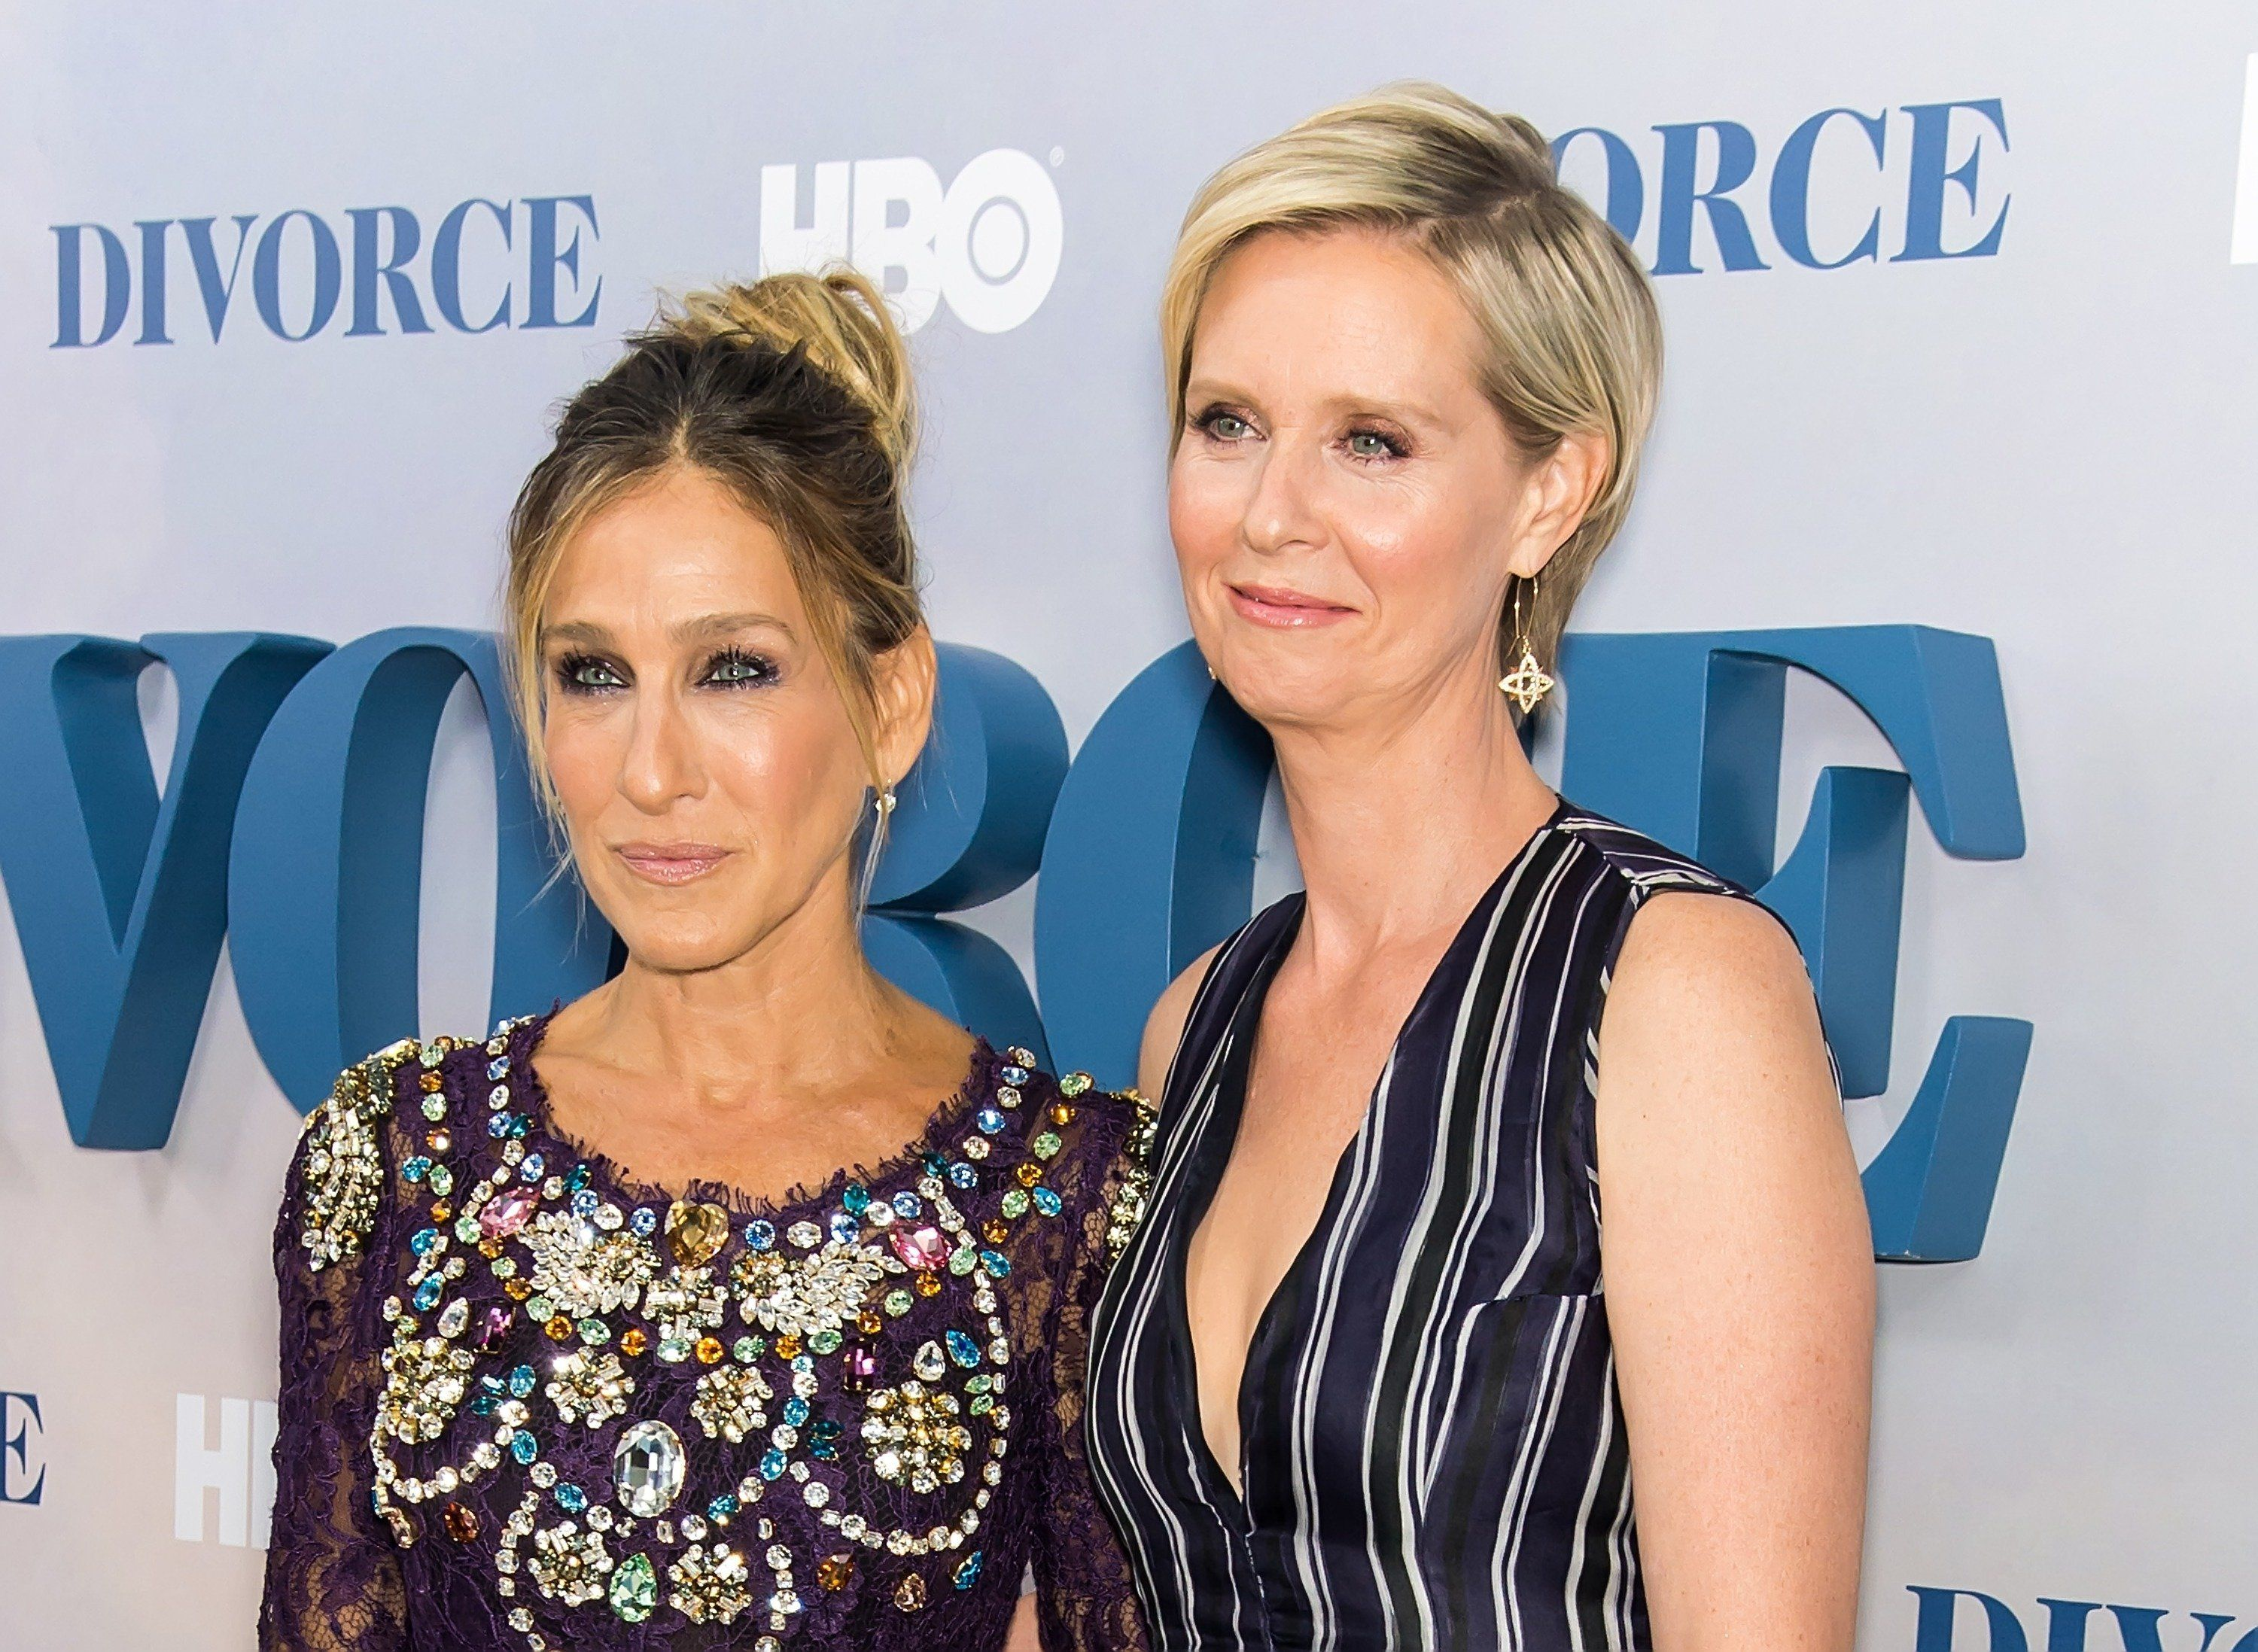 Sarah Jessica Parker, left, weighed in on Cynthia Nixon's gubernatorial bid